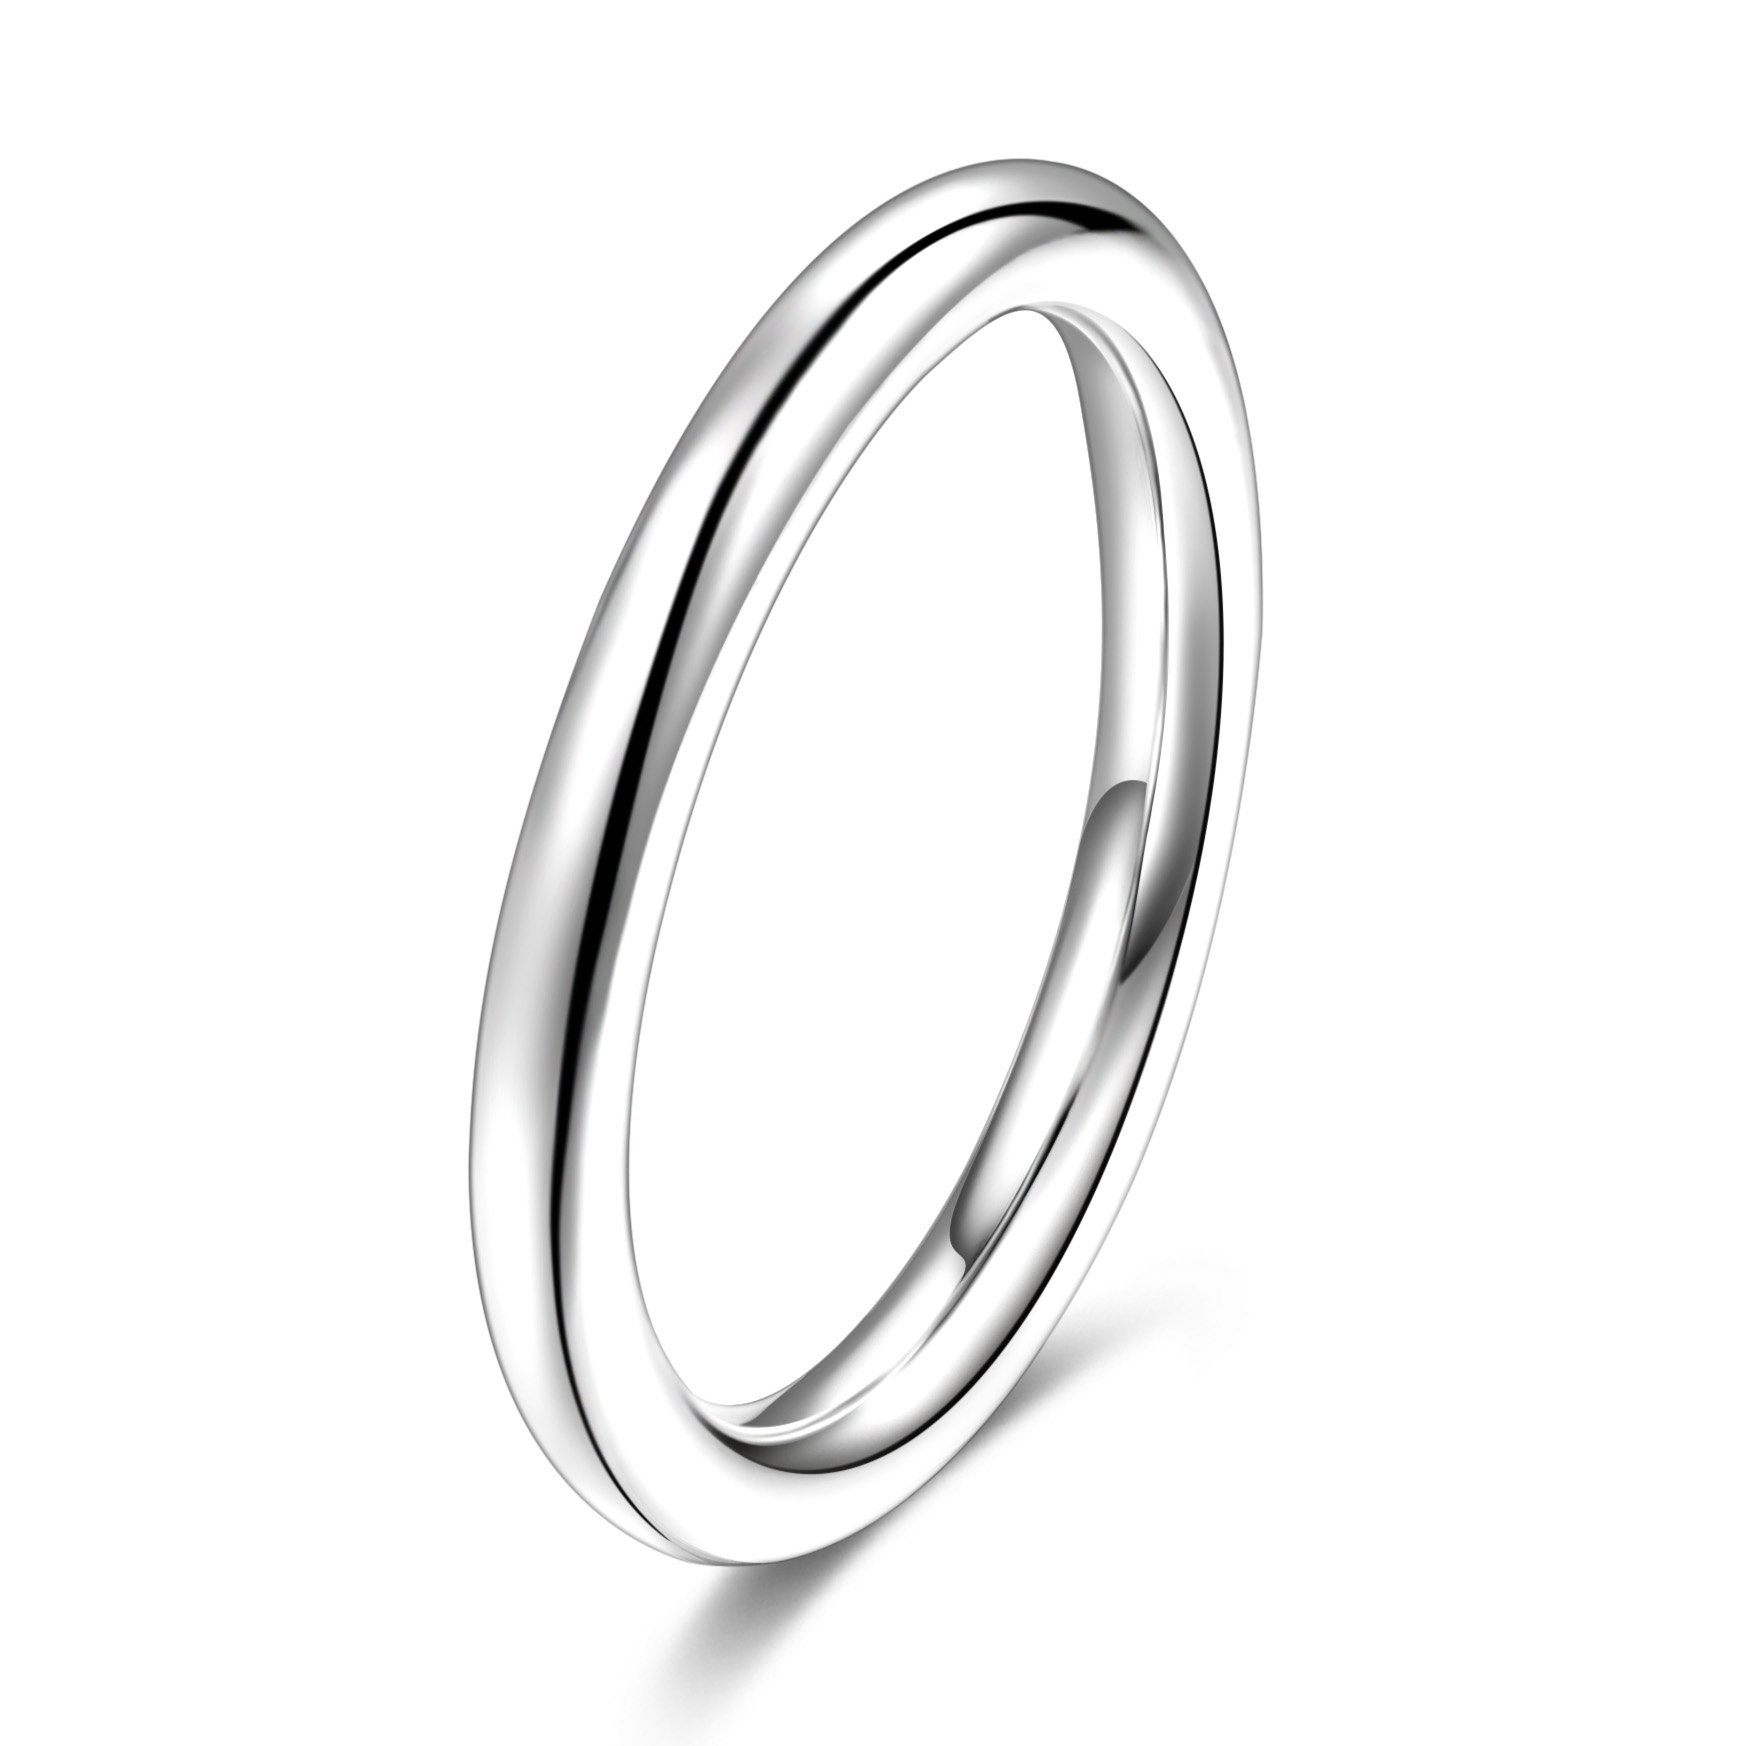 2.5mm Thick S990 Pure Sterling Silver Above Midi Knuckle Pinky Finger Ring Gothic US Size 8.5